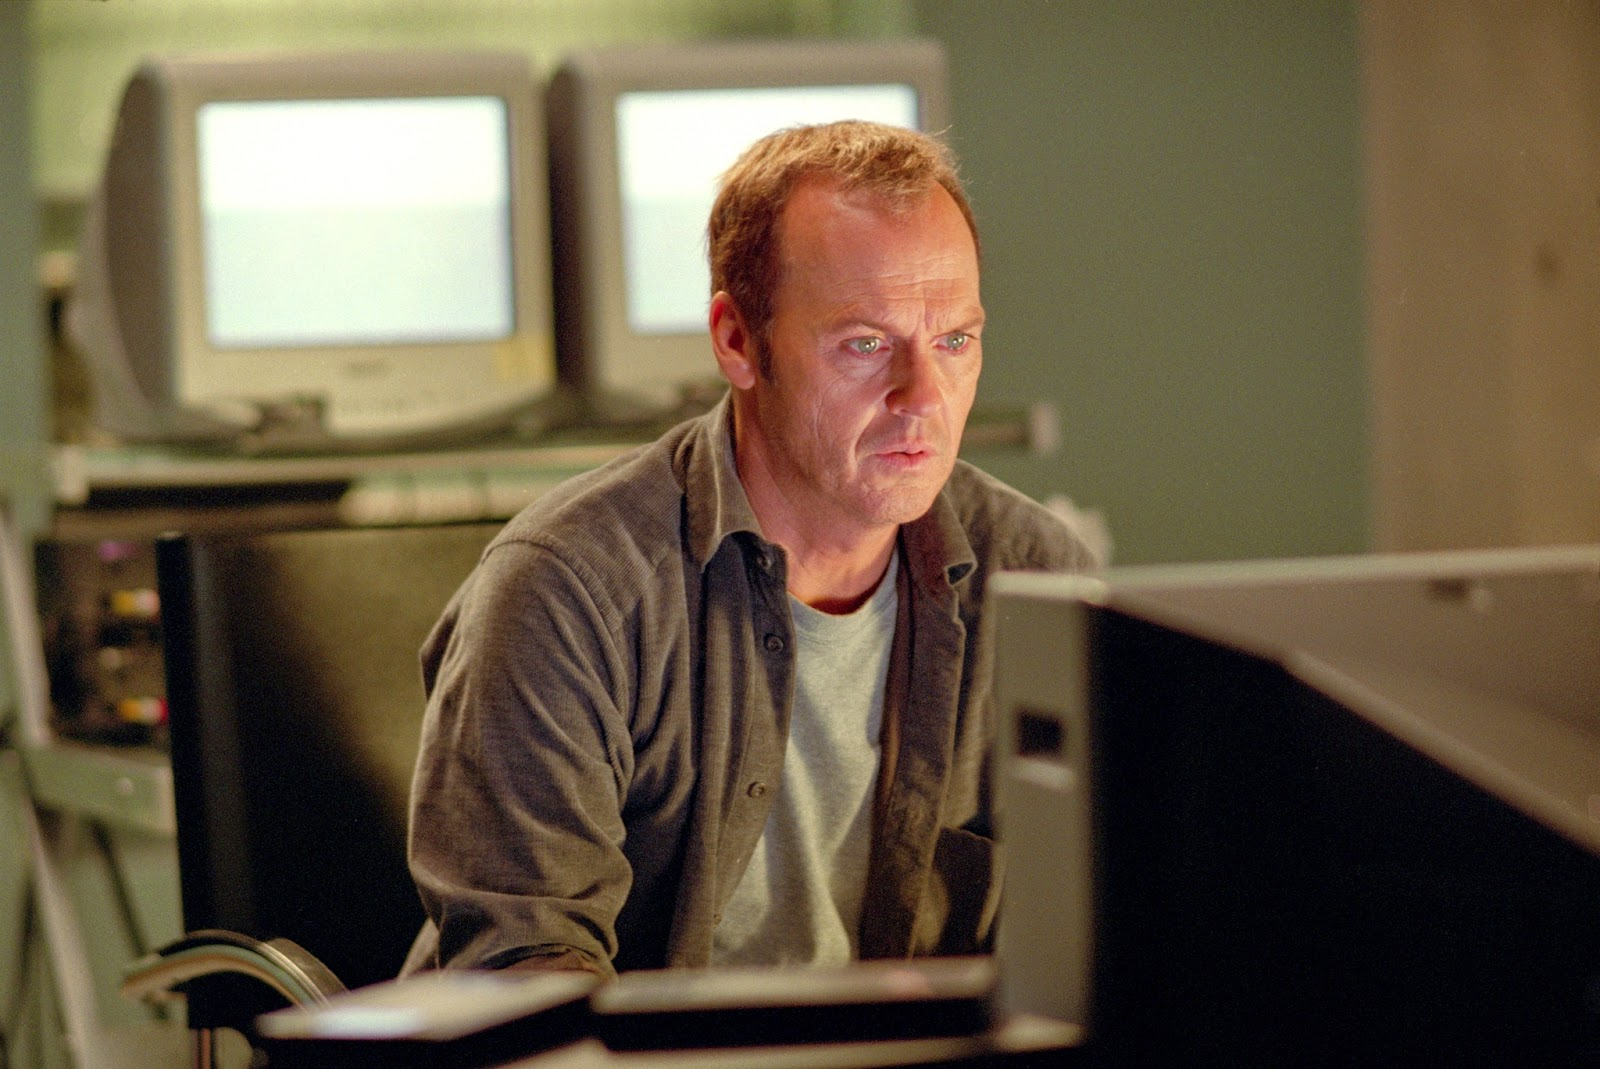 Widower Michael Keaton becomes obsessed with contacting his late wife via Electronic Voice Phenomenon in White Noise (2005)